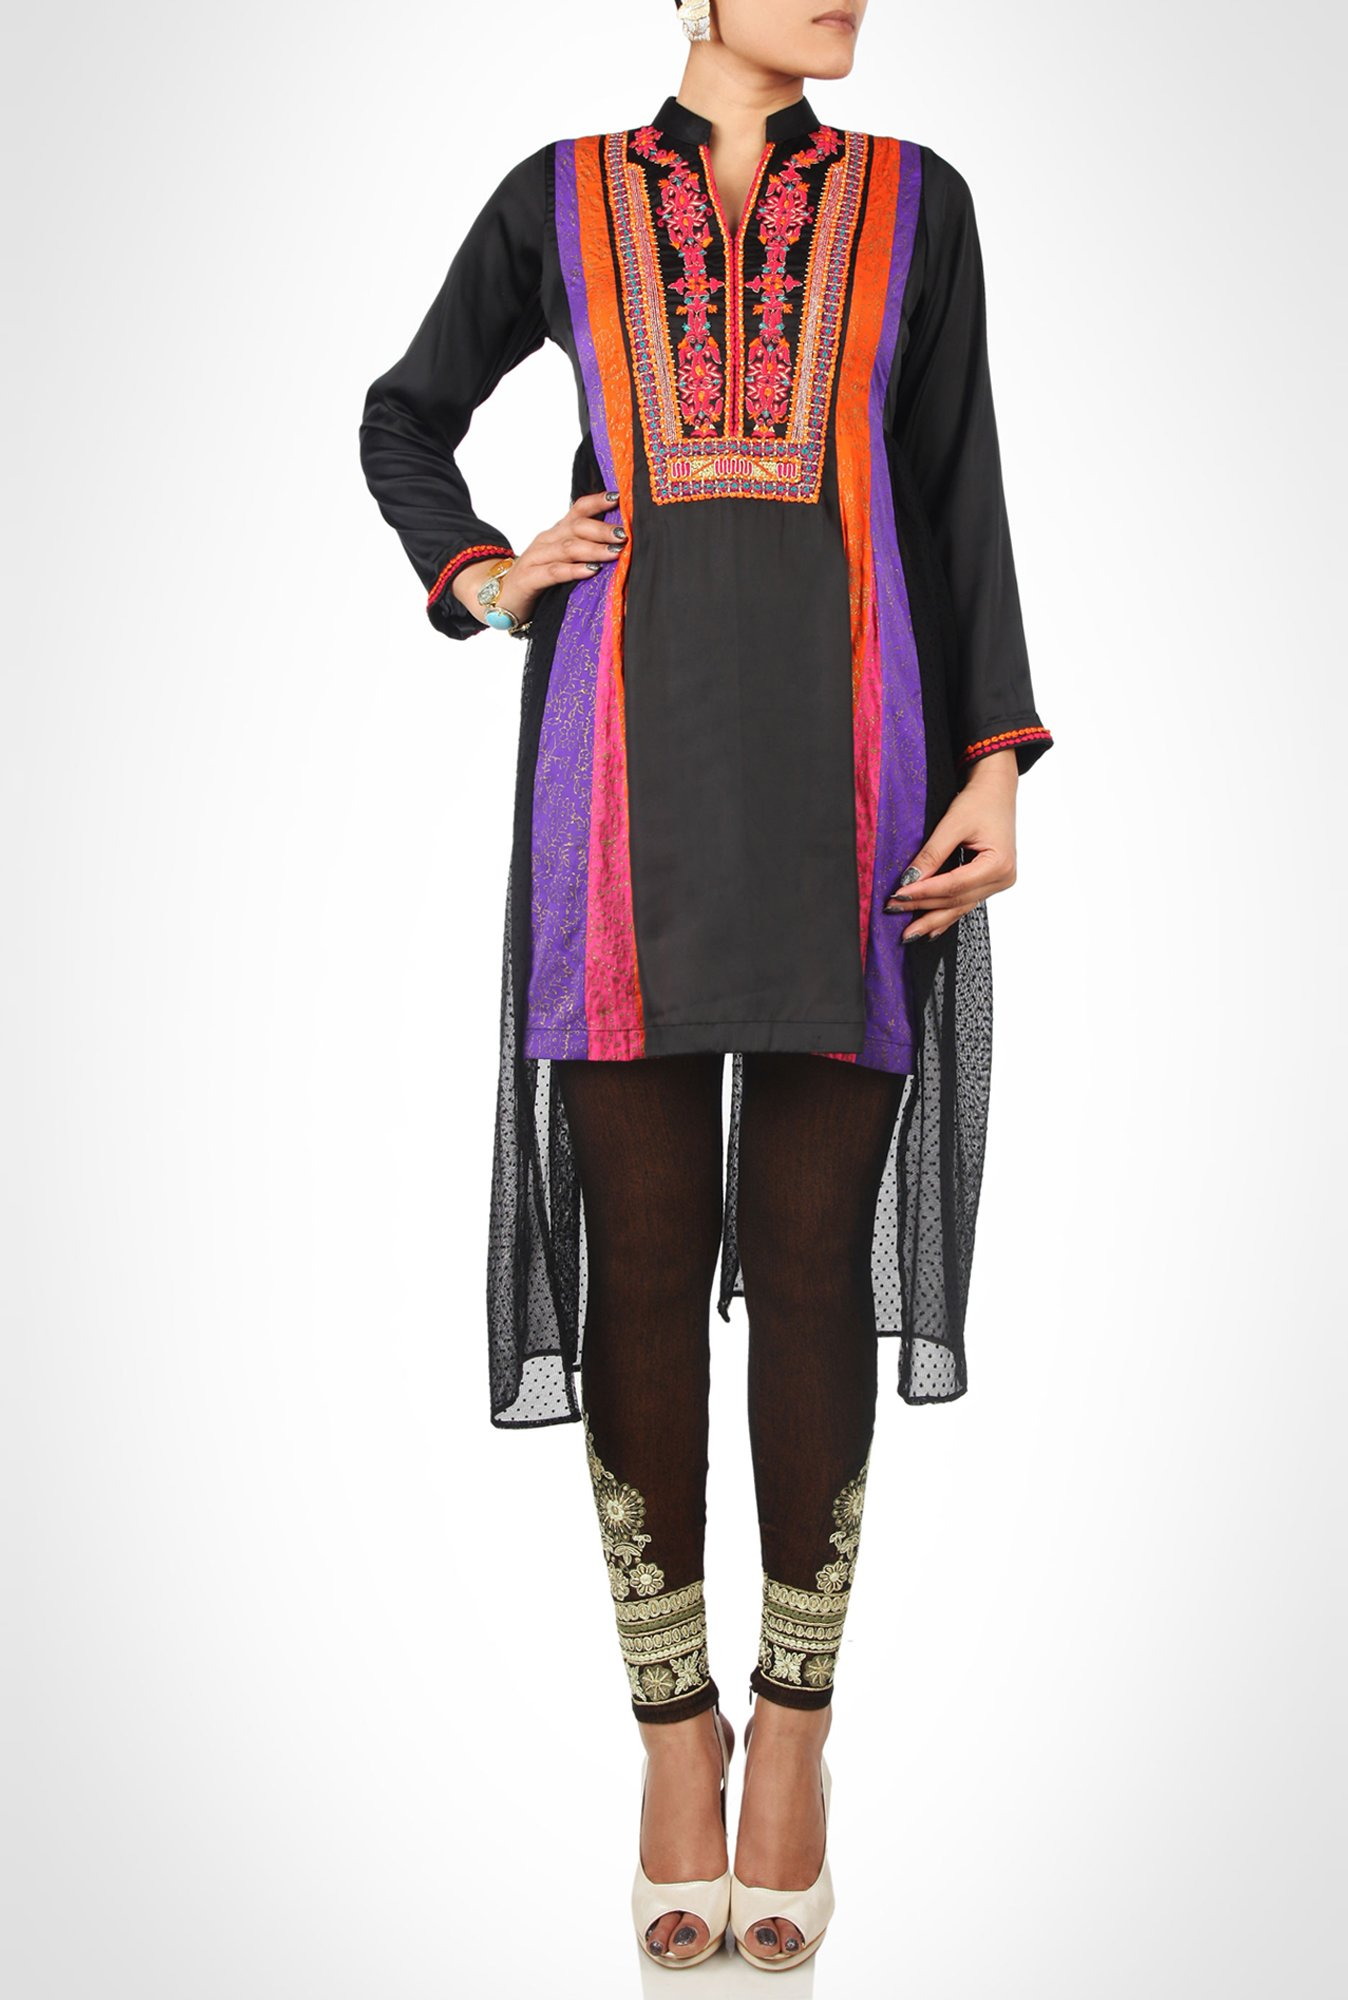 Huma Adnan Designer Wear Black Kurti by Kimaya